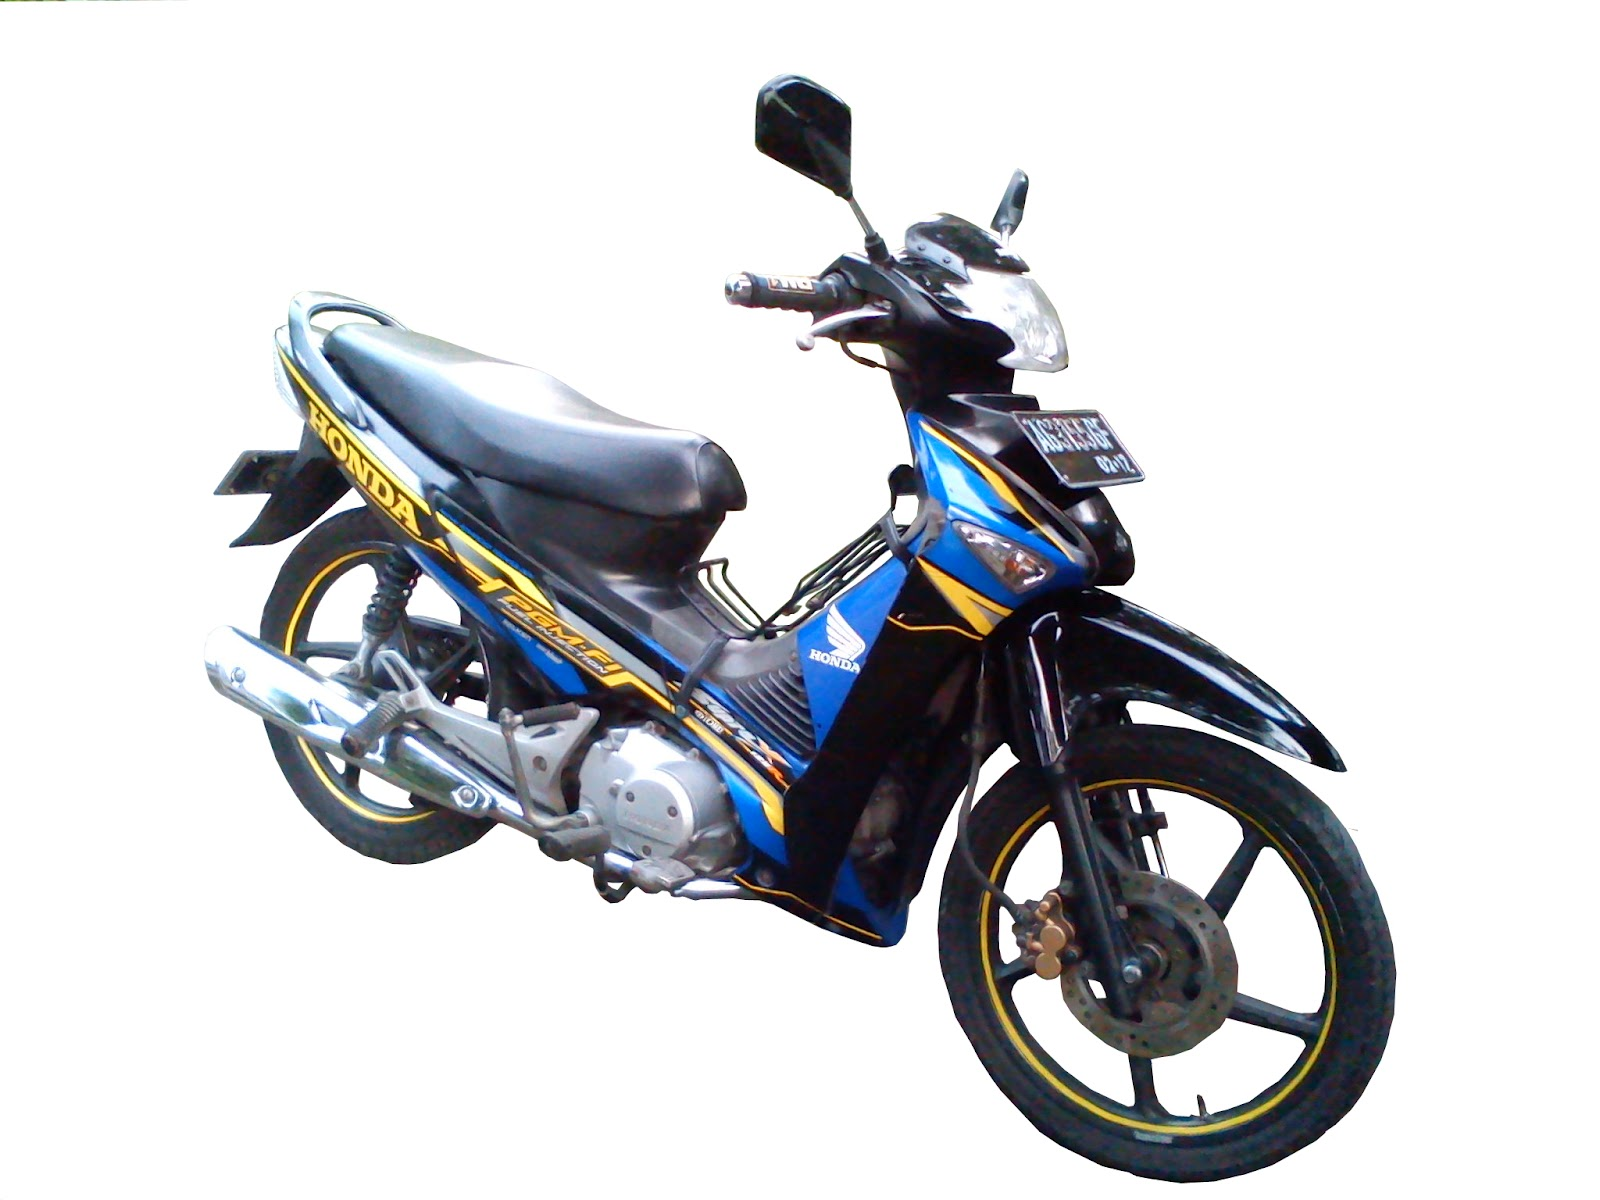 Honda Pgm Fi 125 Fuel Injection Sepeda Motorku Motorcycle Review